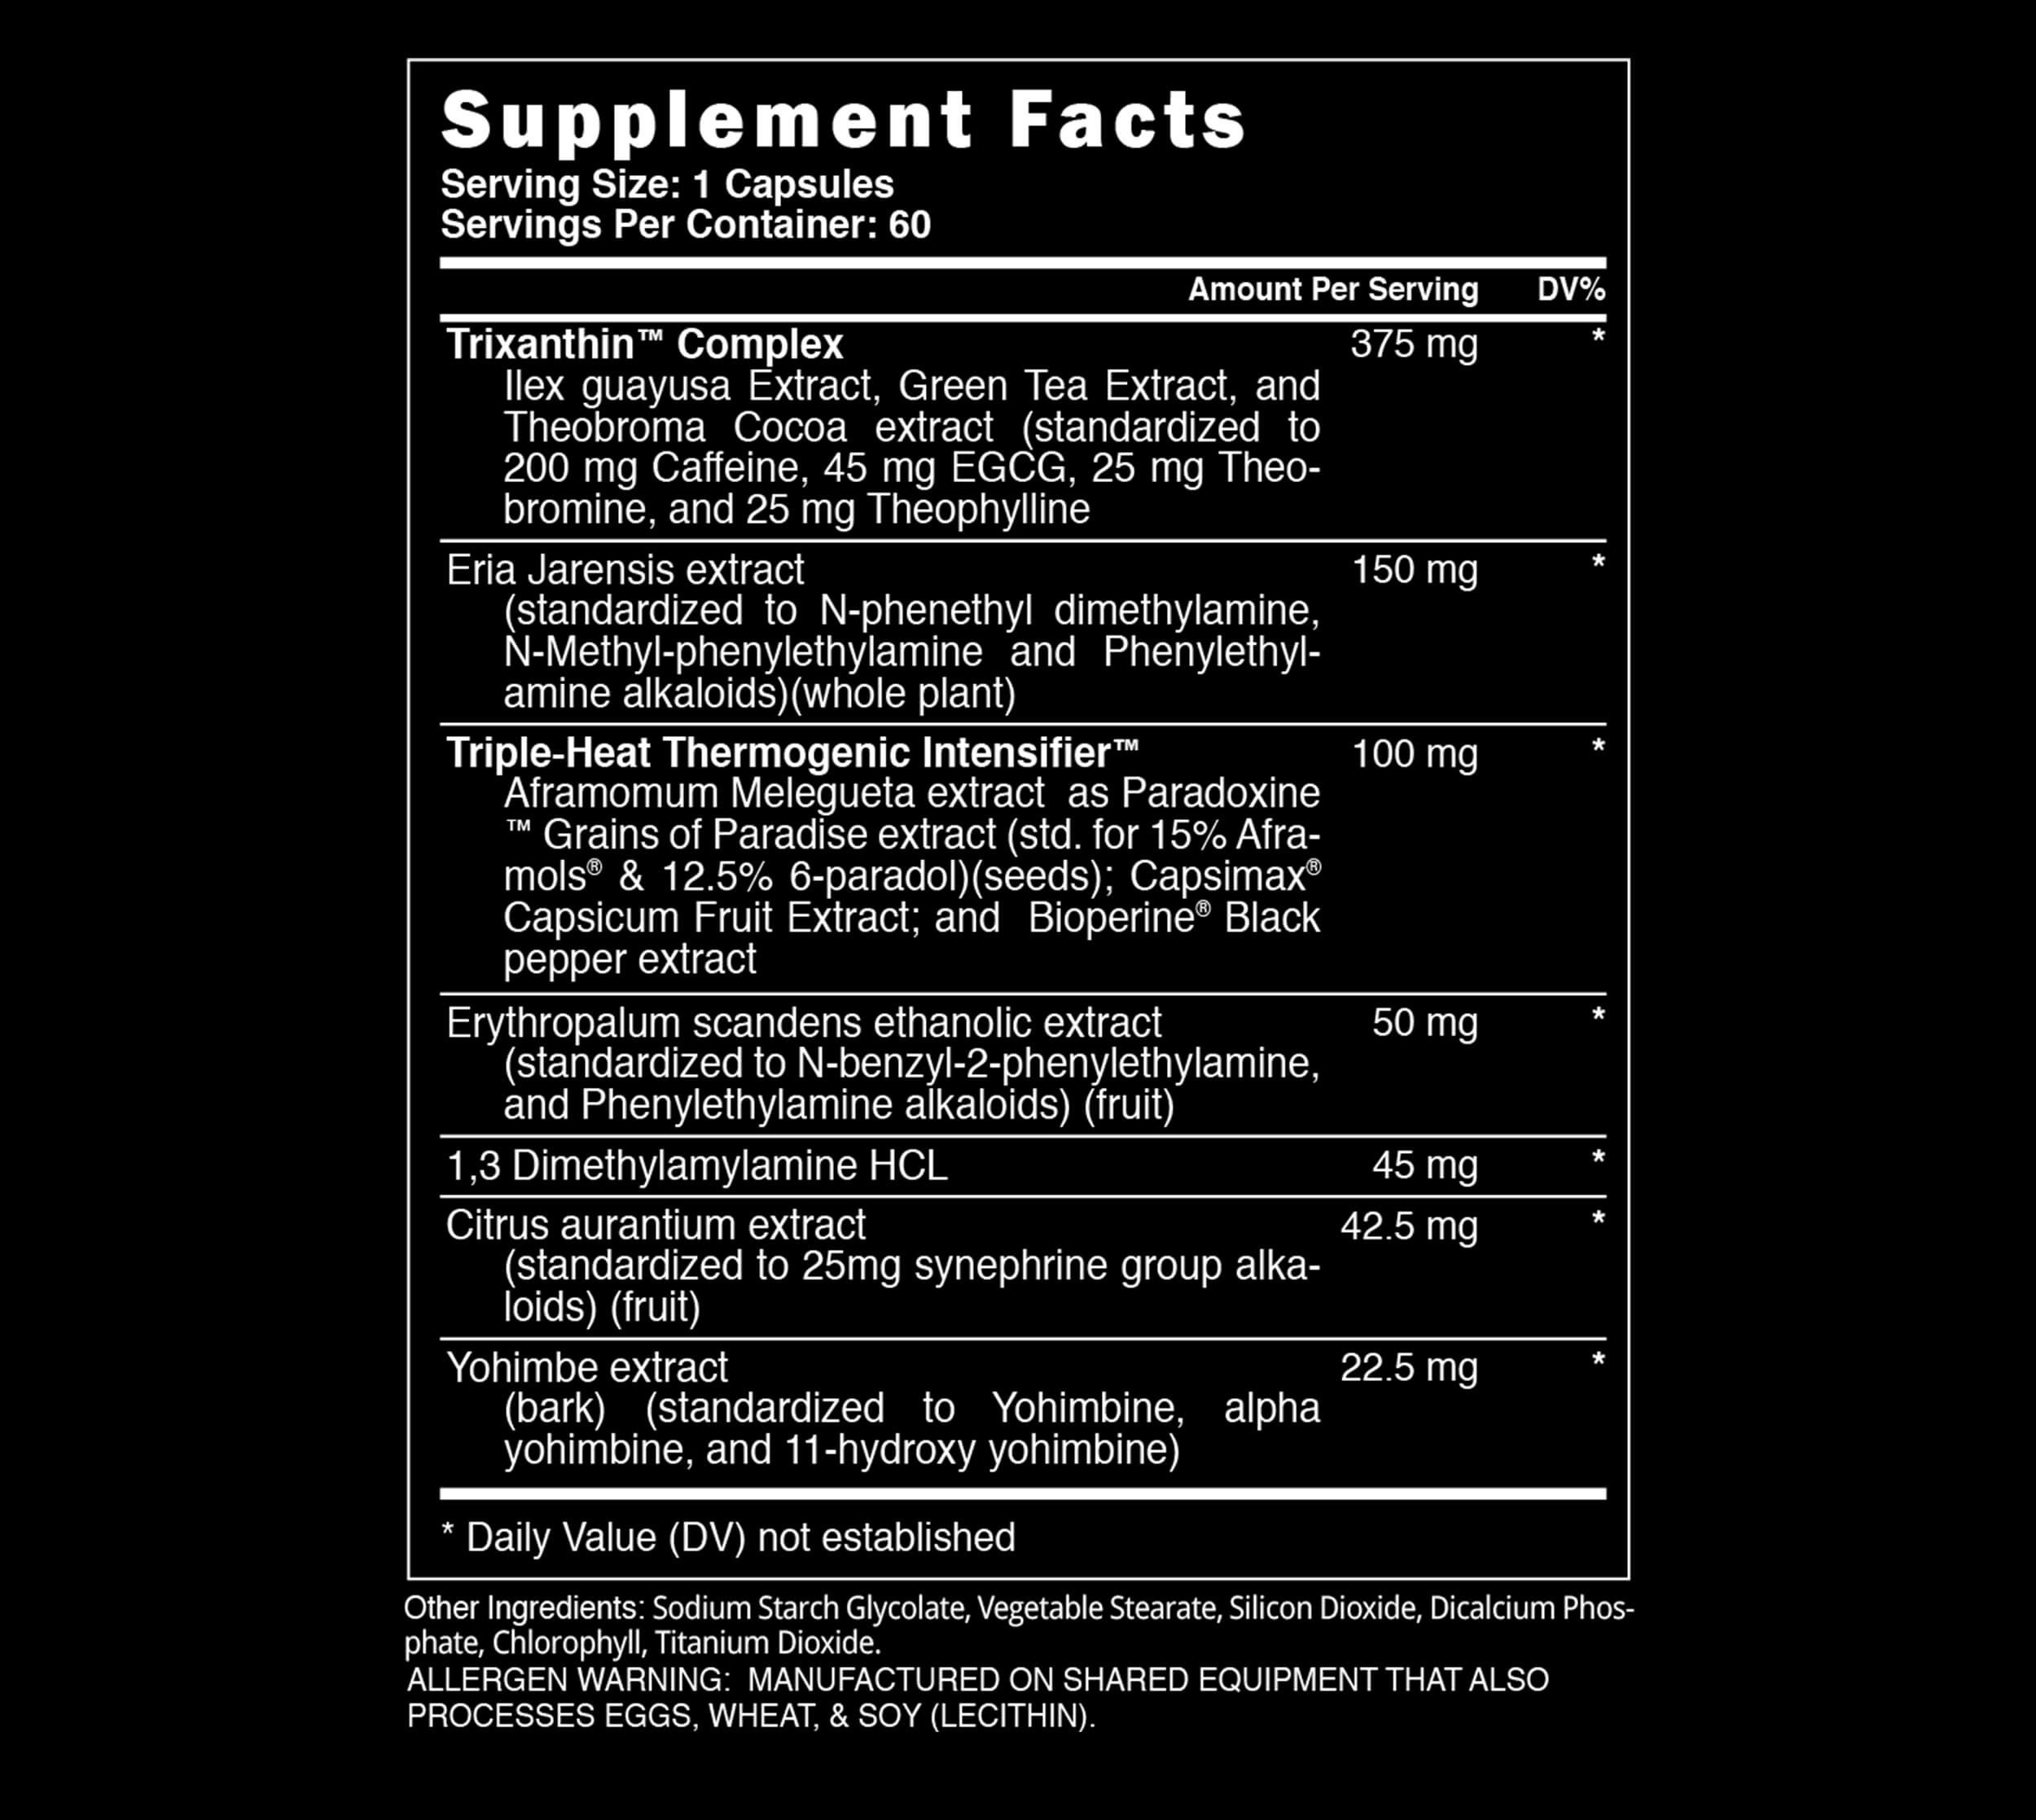 kingcobra-dmaa-fatburner-supplement-facts-panel.jpg